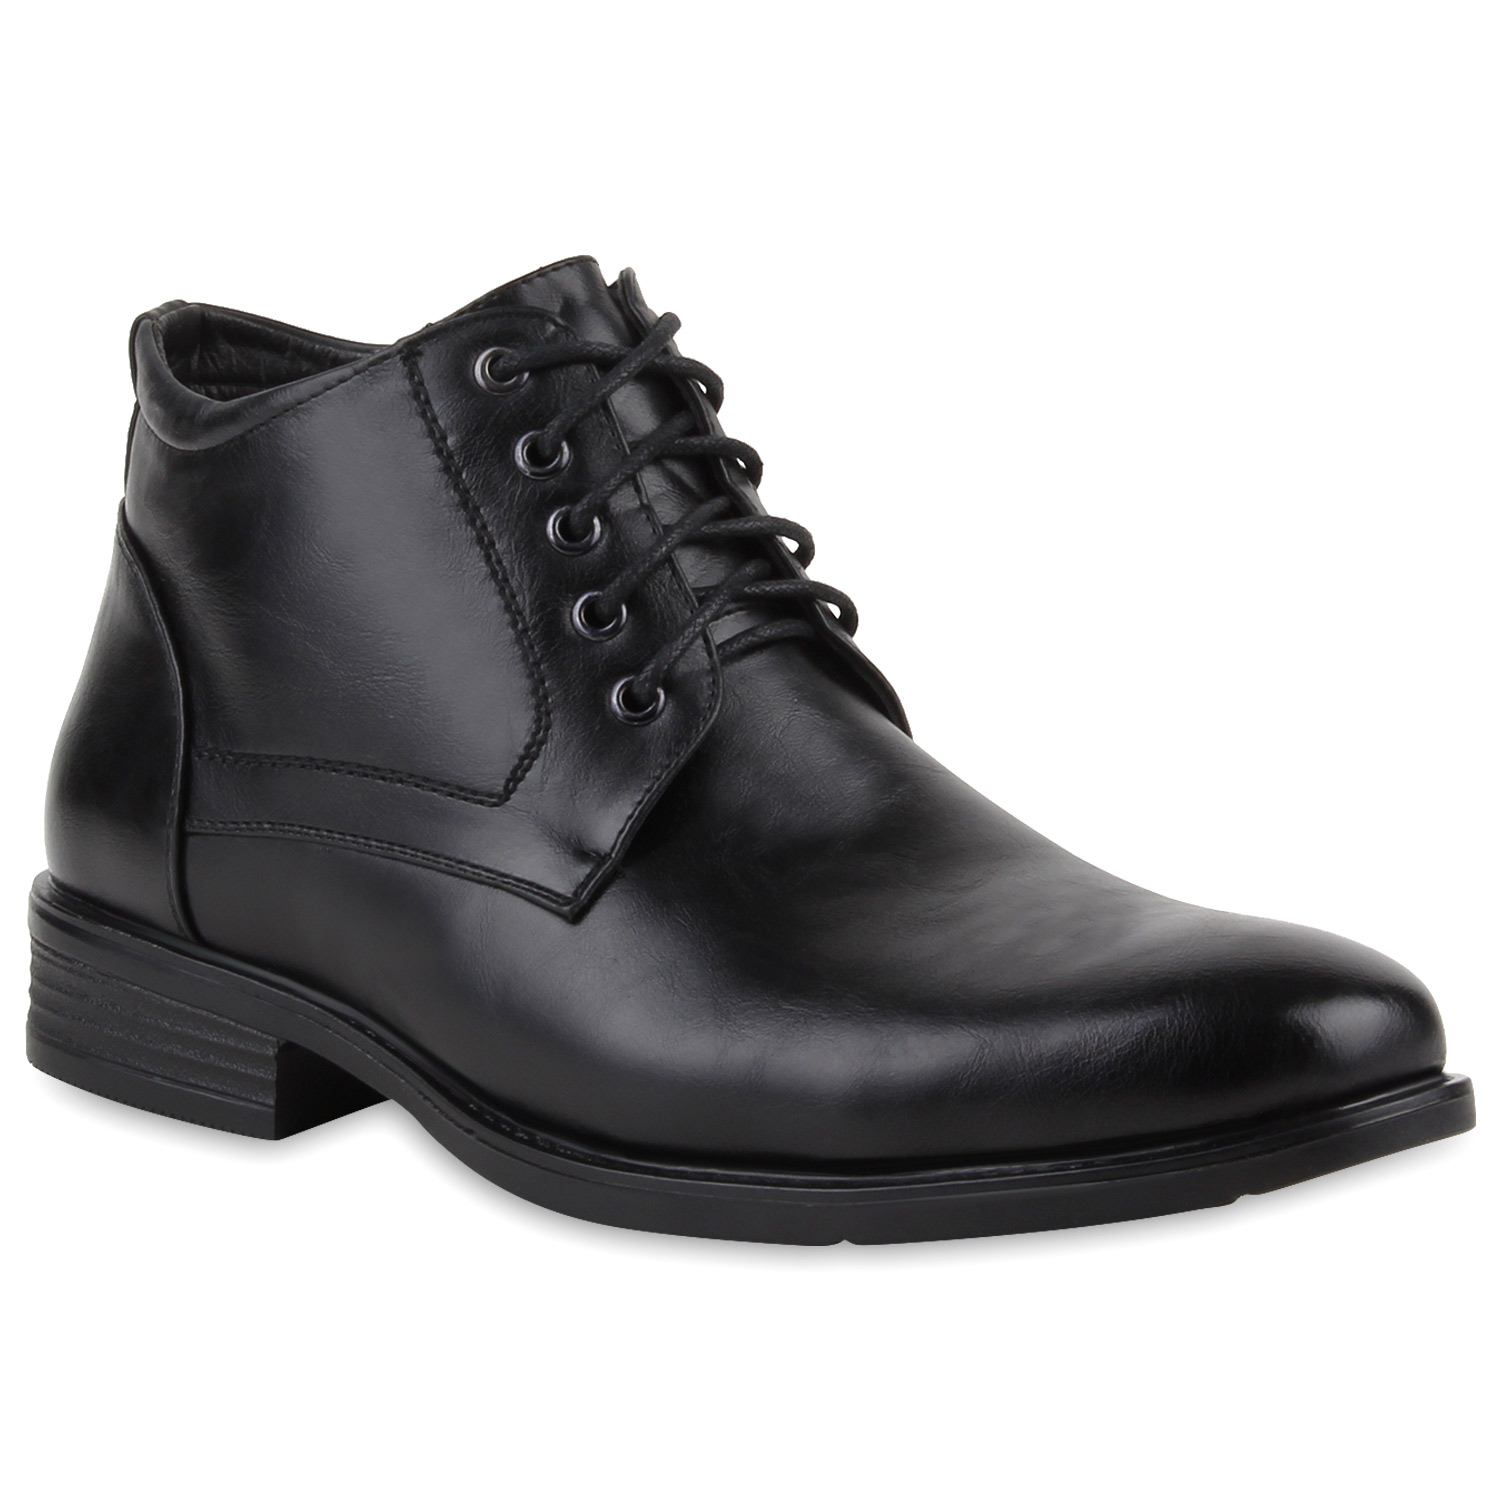 elegante herren schuhe business schn rer schn rschuhe boots 813543 mens special ebay. Black Bedroom Furniture Sets. Home Design Ideas